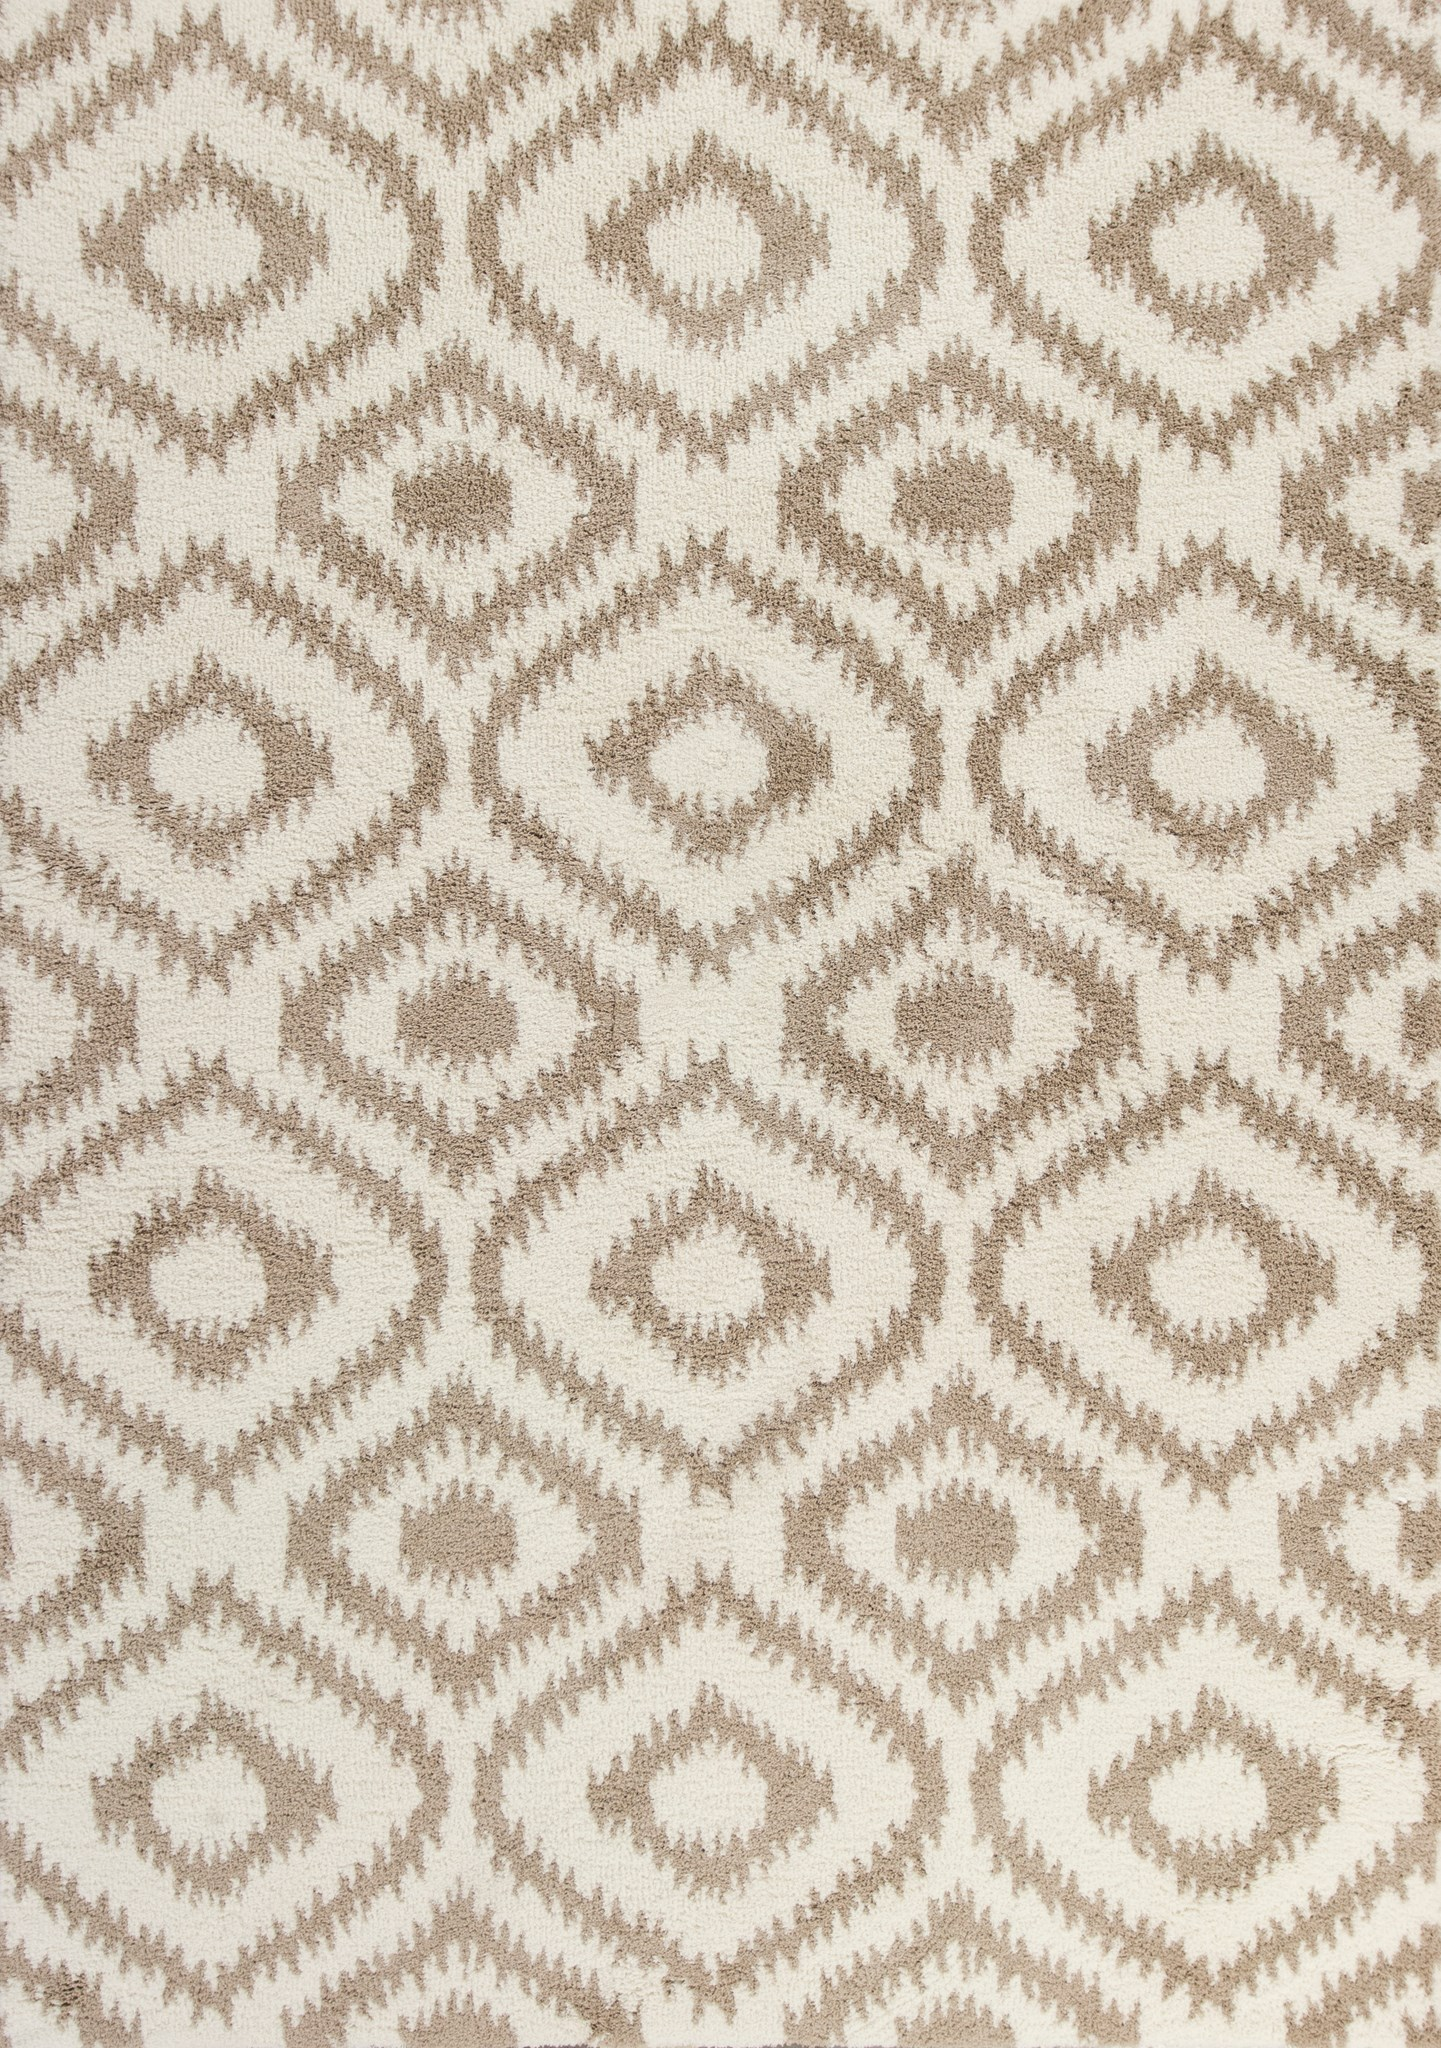 Oasis 1651 Ivory/Beige Concentro Shag